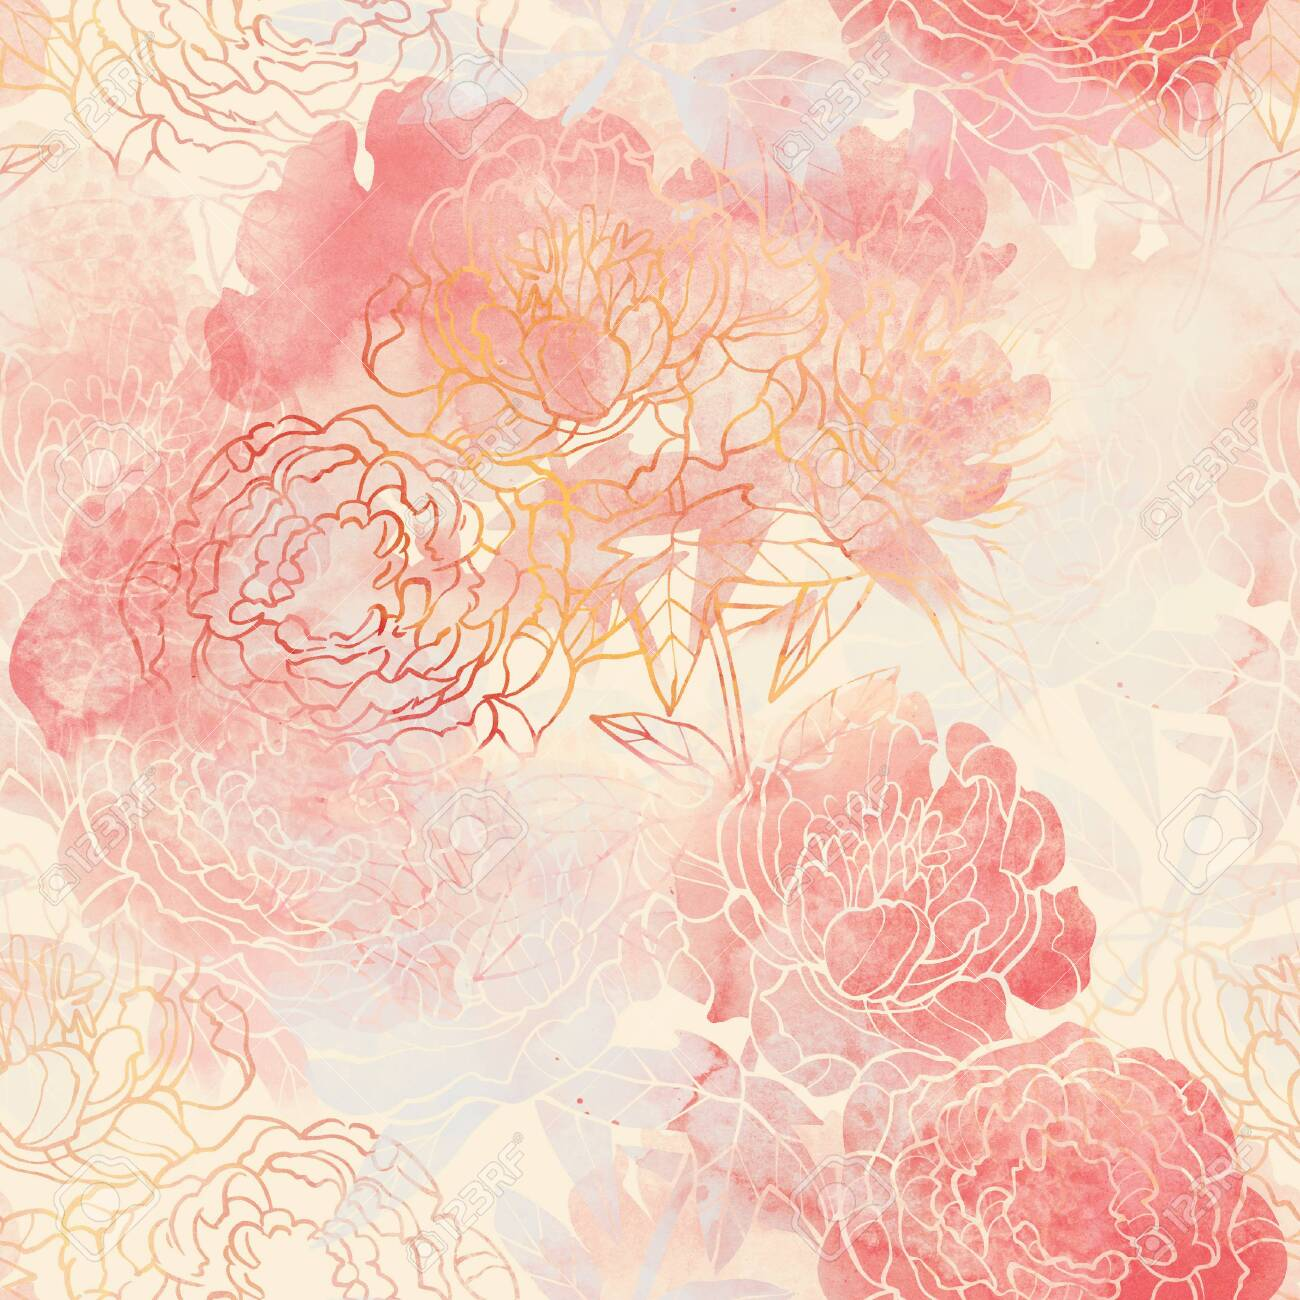 Pink and Red flower raster pattern. Hand drawn illustration on white or black background. - 132391953